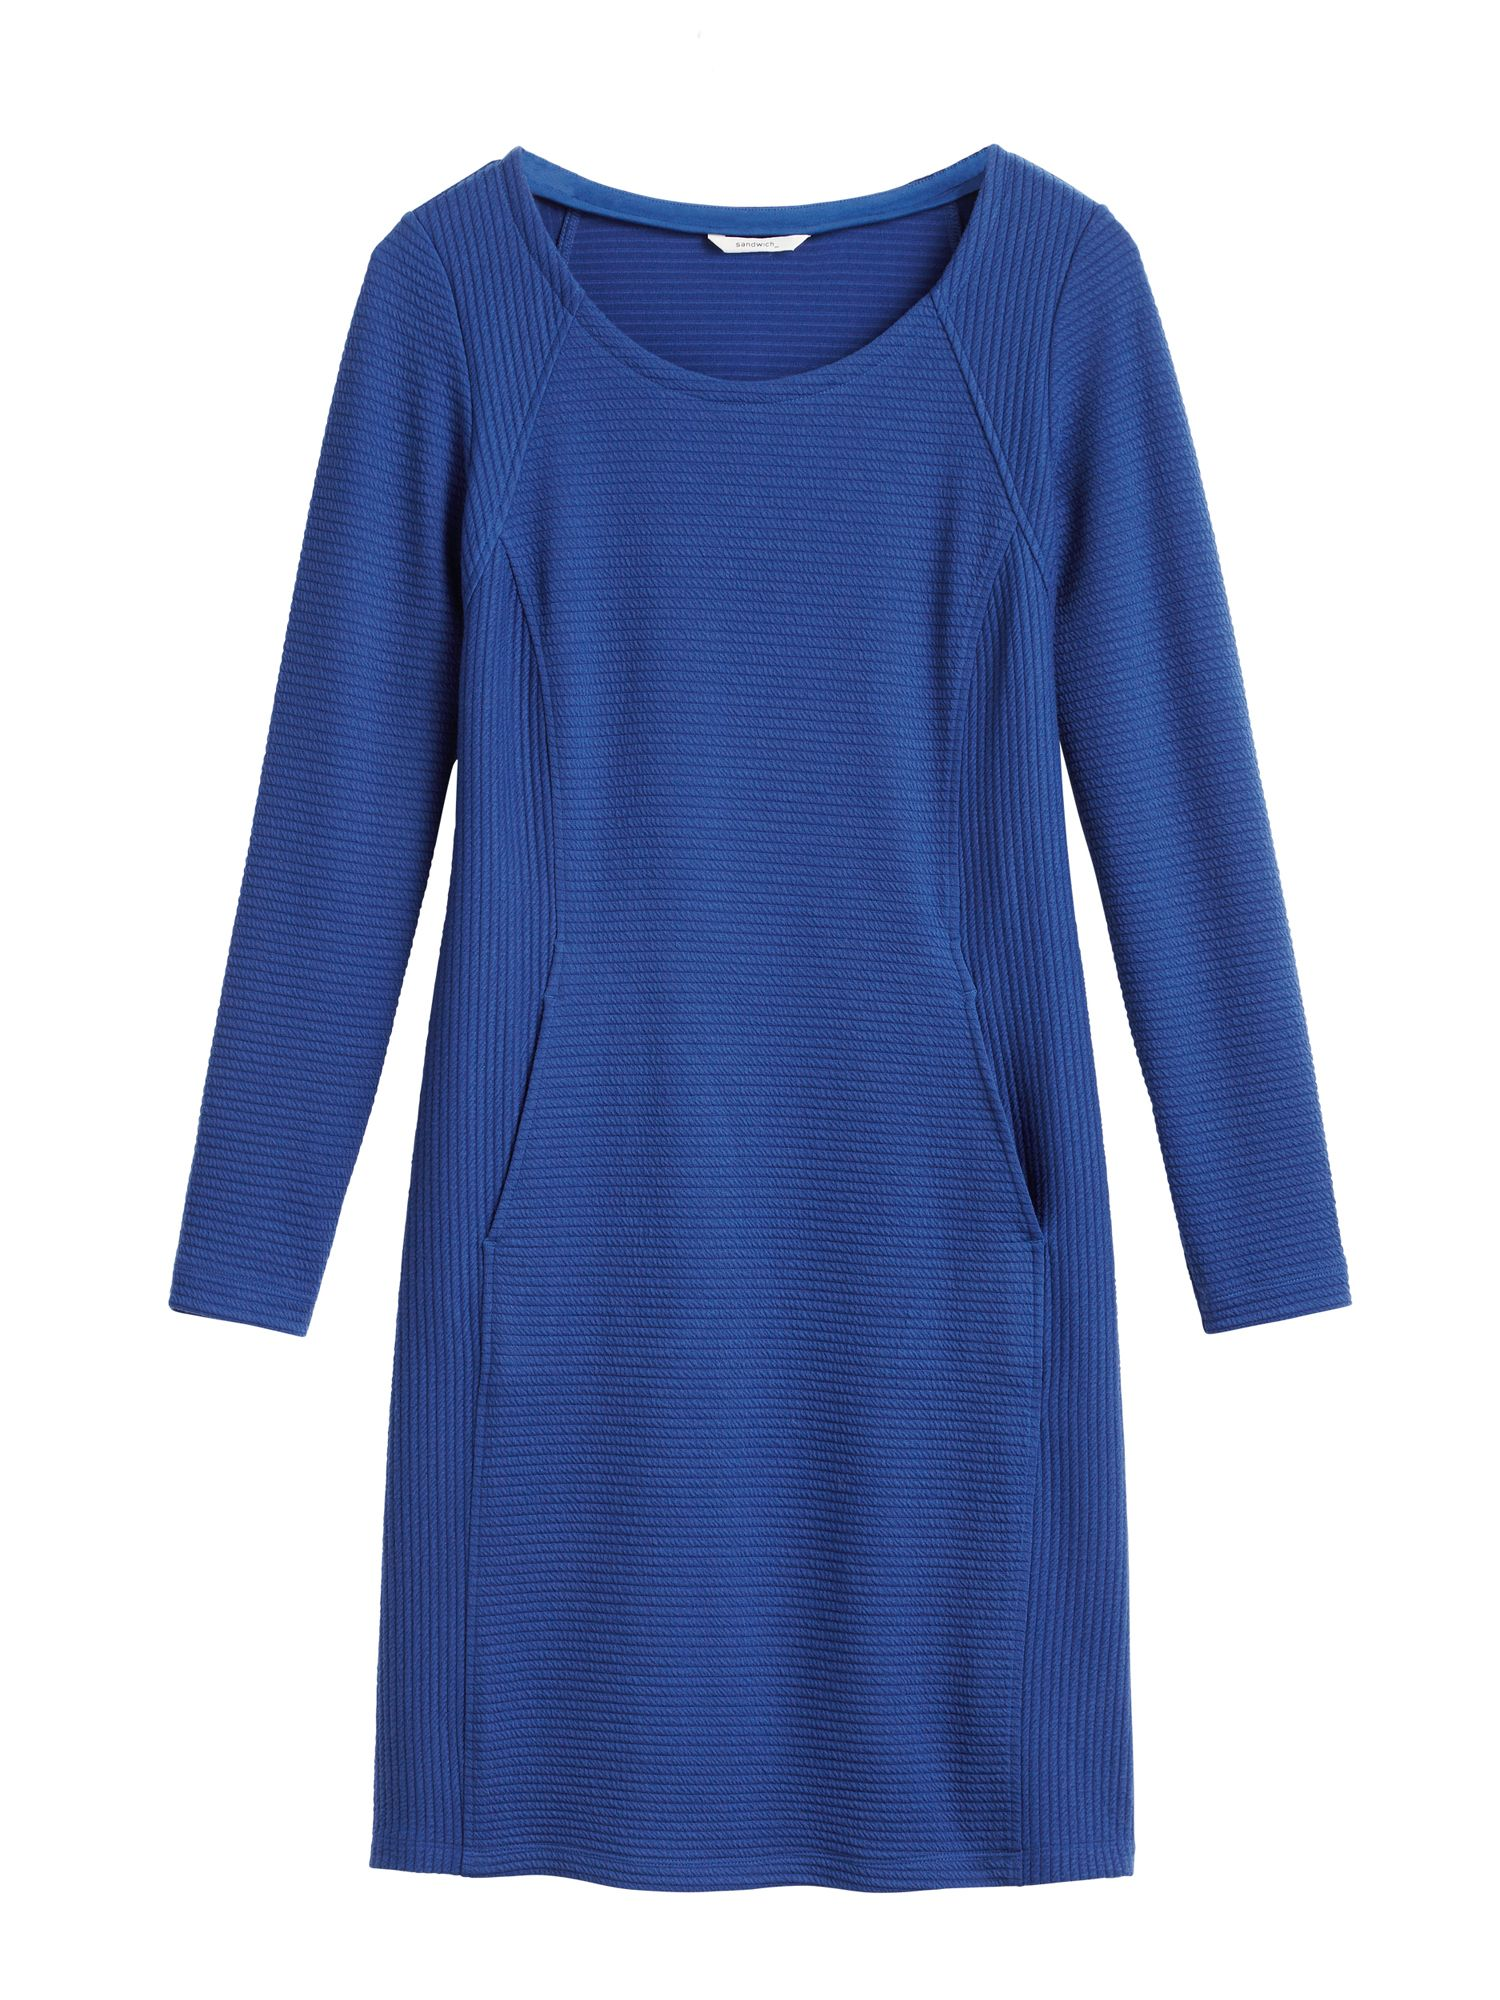 Sandwich Textured dress with front pockets, Blue